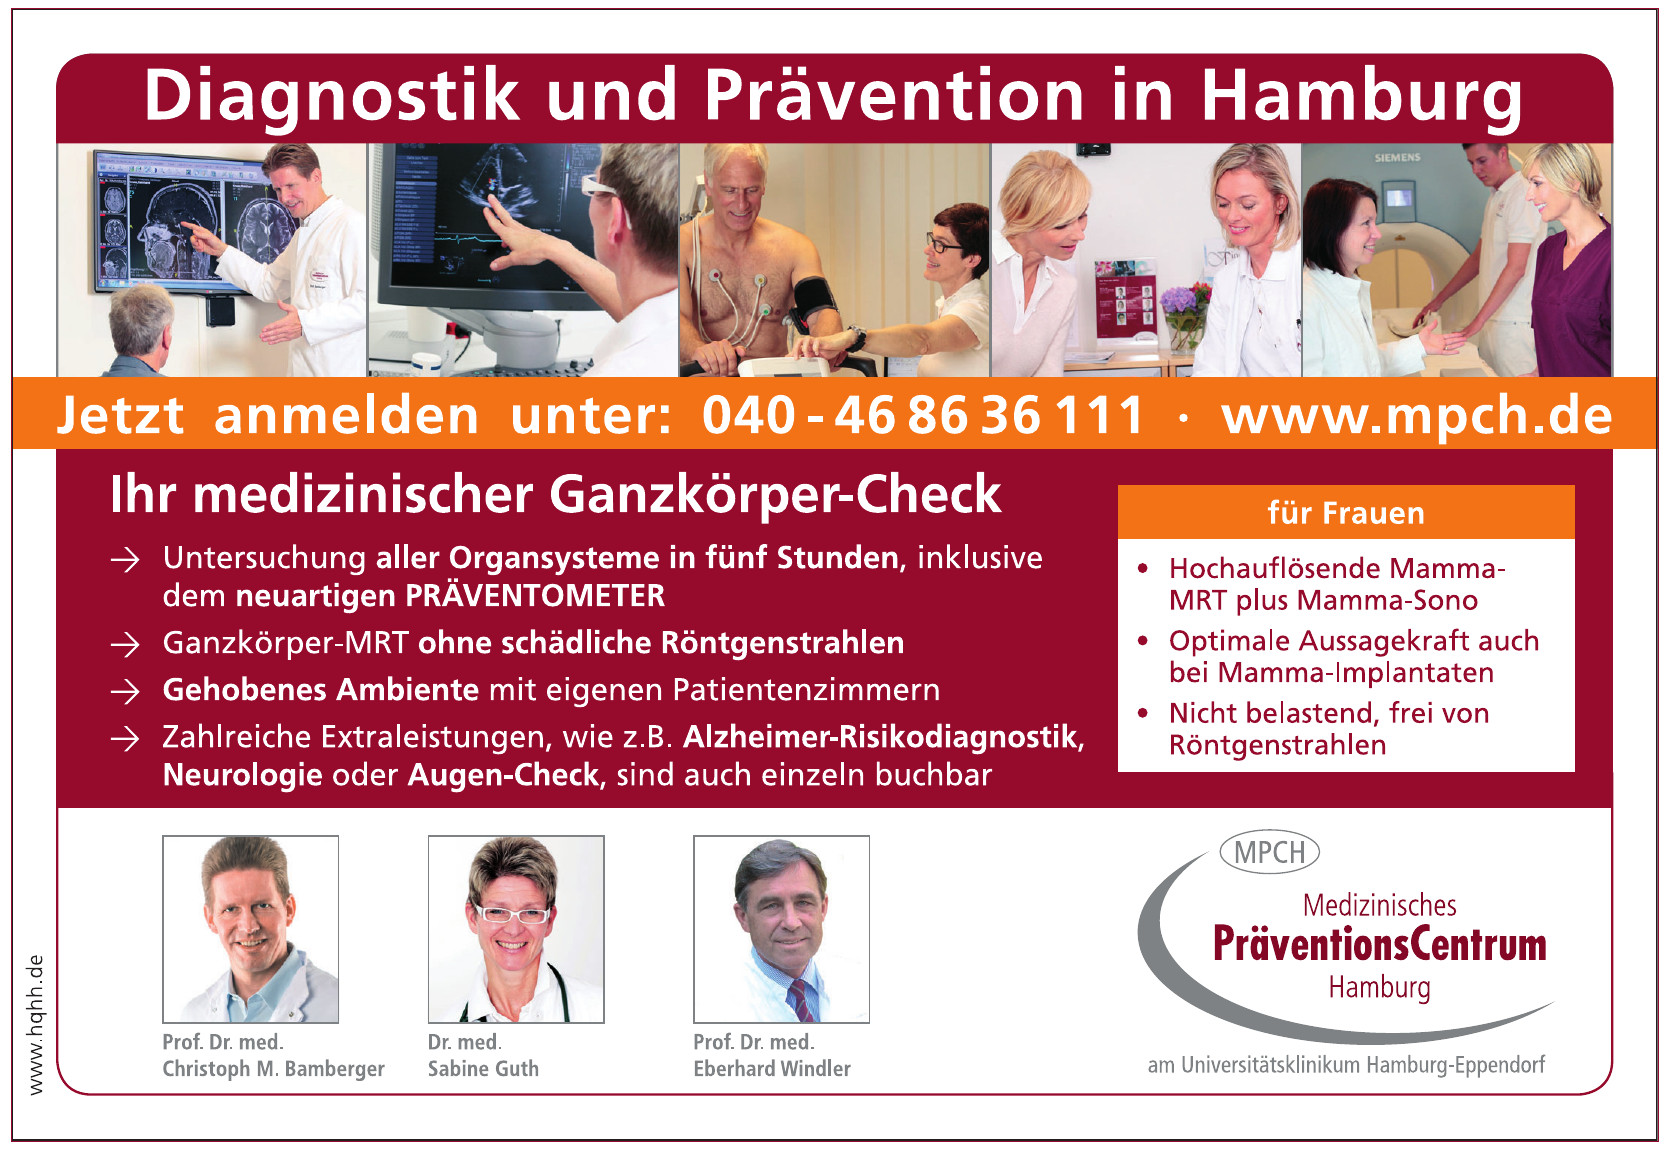 Diagnostik und Prävention in Hamburg